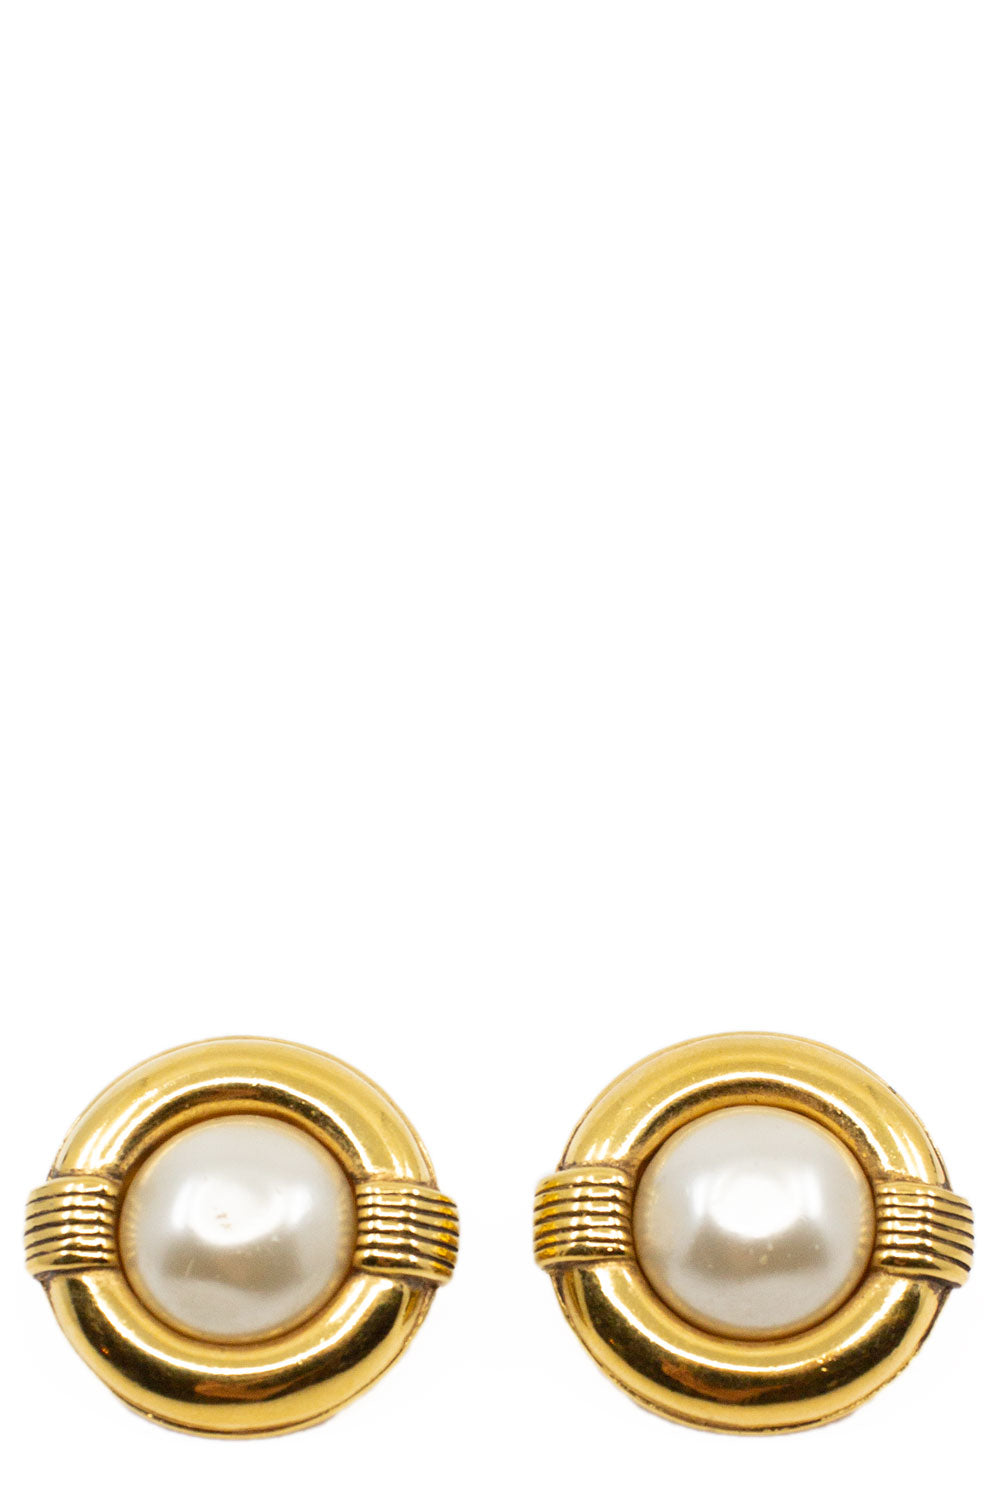 CHANEL Pearl Clip Earrings Large Frontalansicht